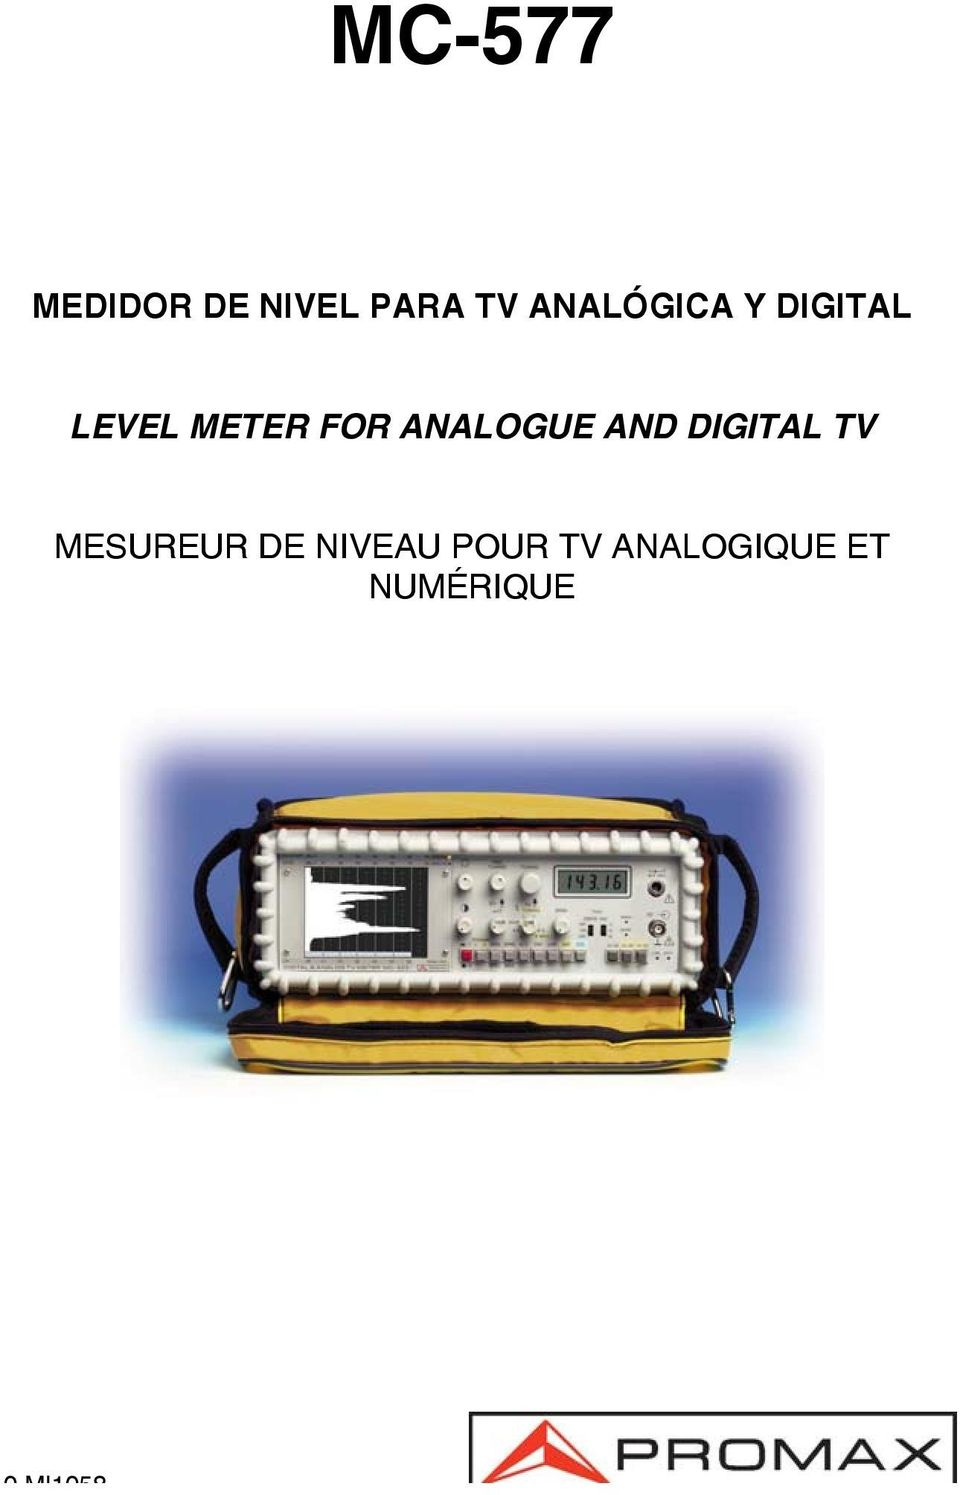 ANALOGUE AND DIGITAL TV MESUREUR DE